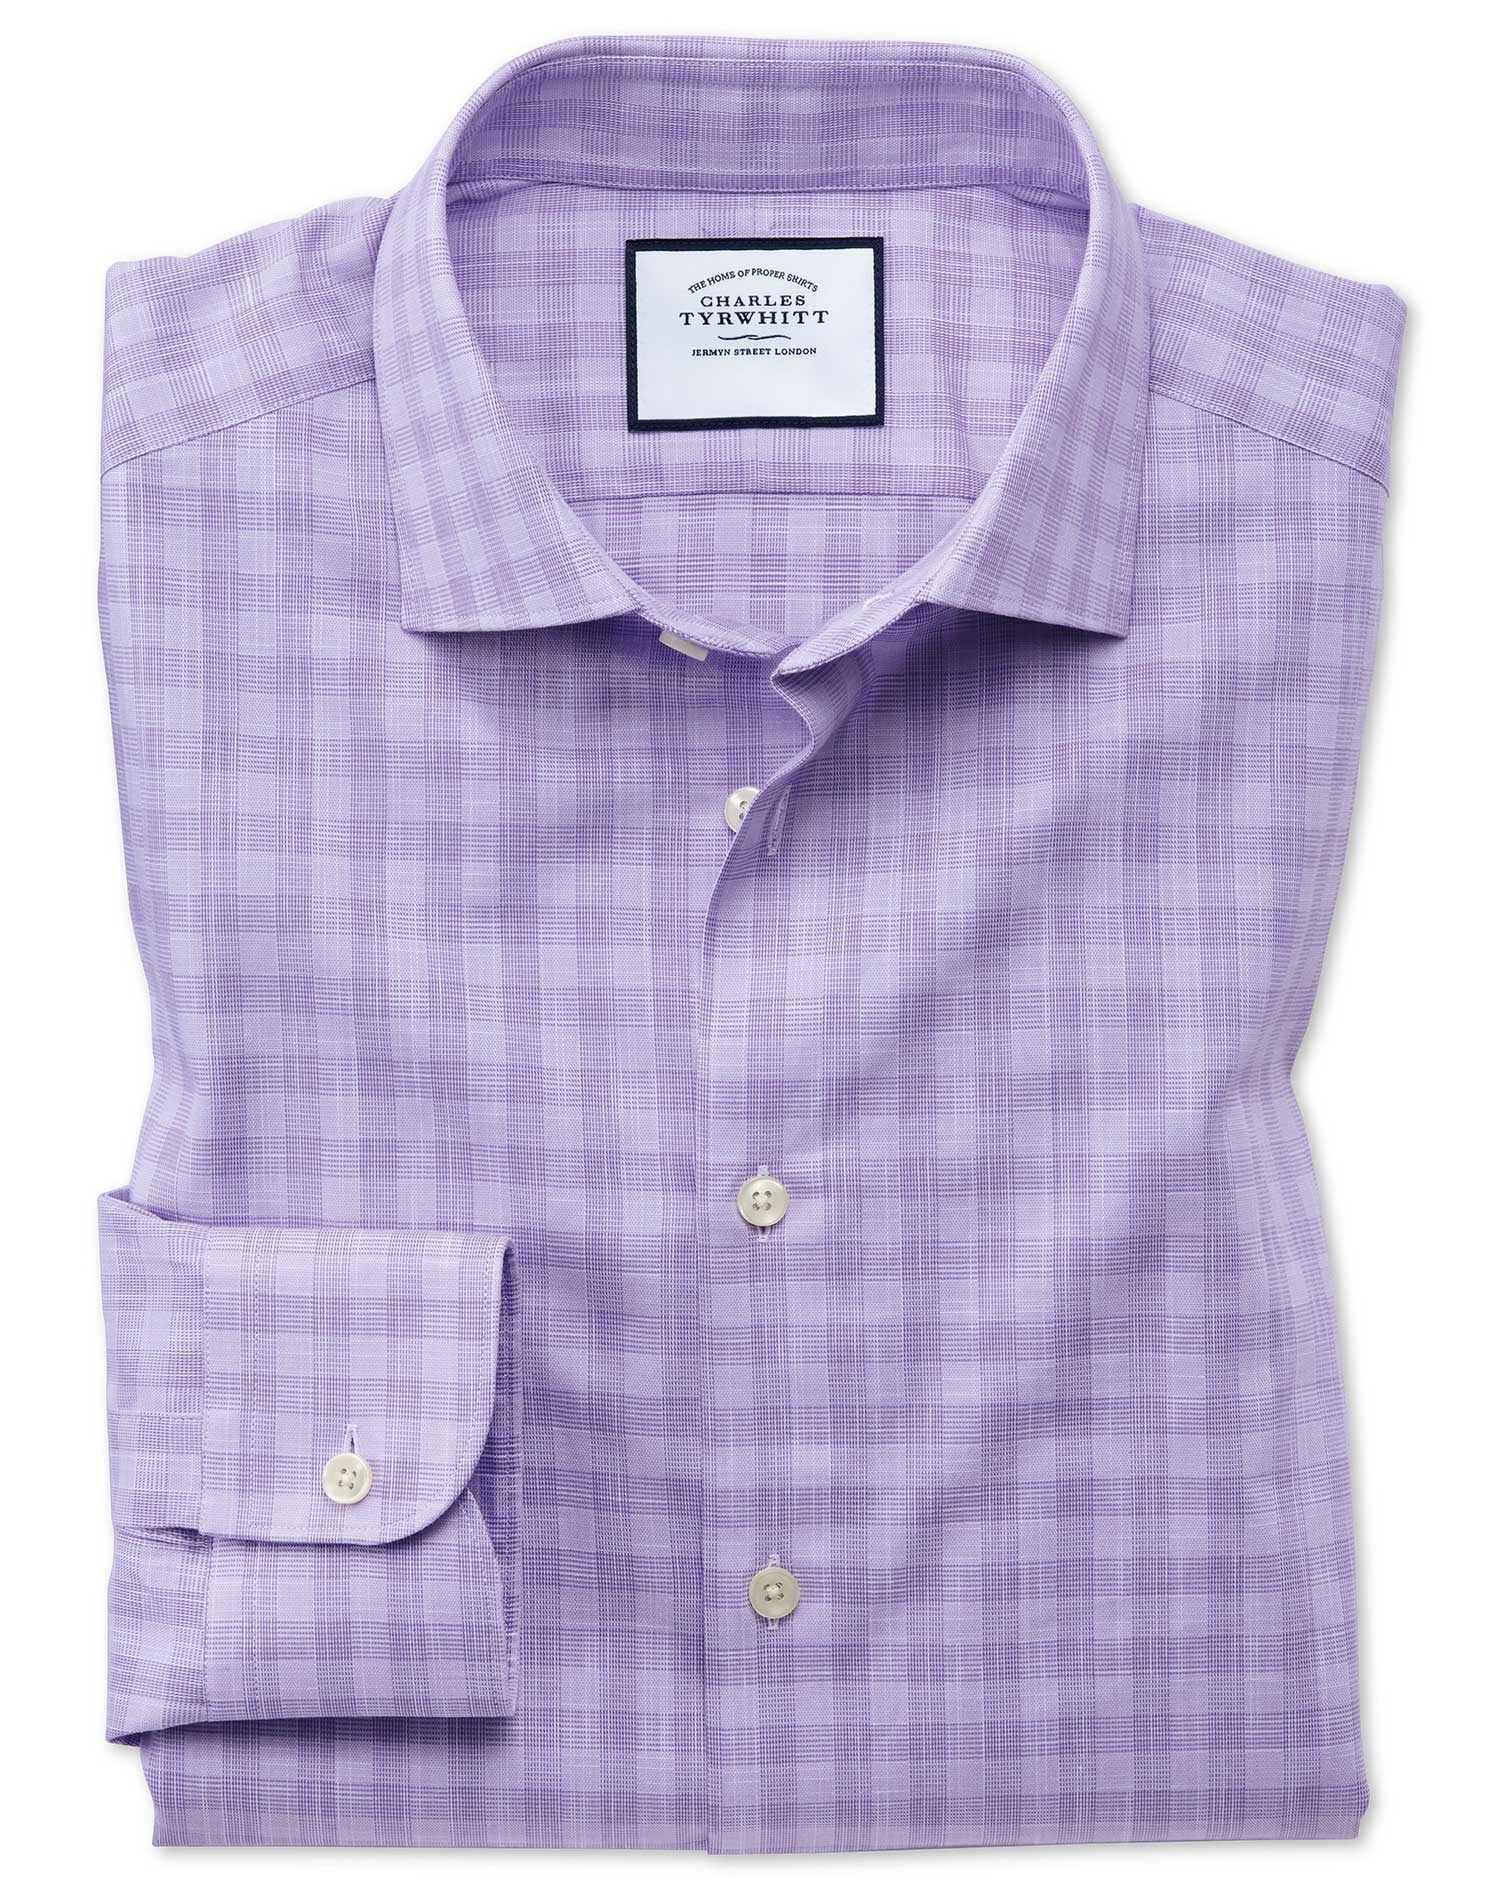 Classic Fit Business Casual Egyptian Cotton Slub Lilac Check Formal Shirt Single Cuff Size 16.5/36 b